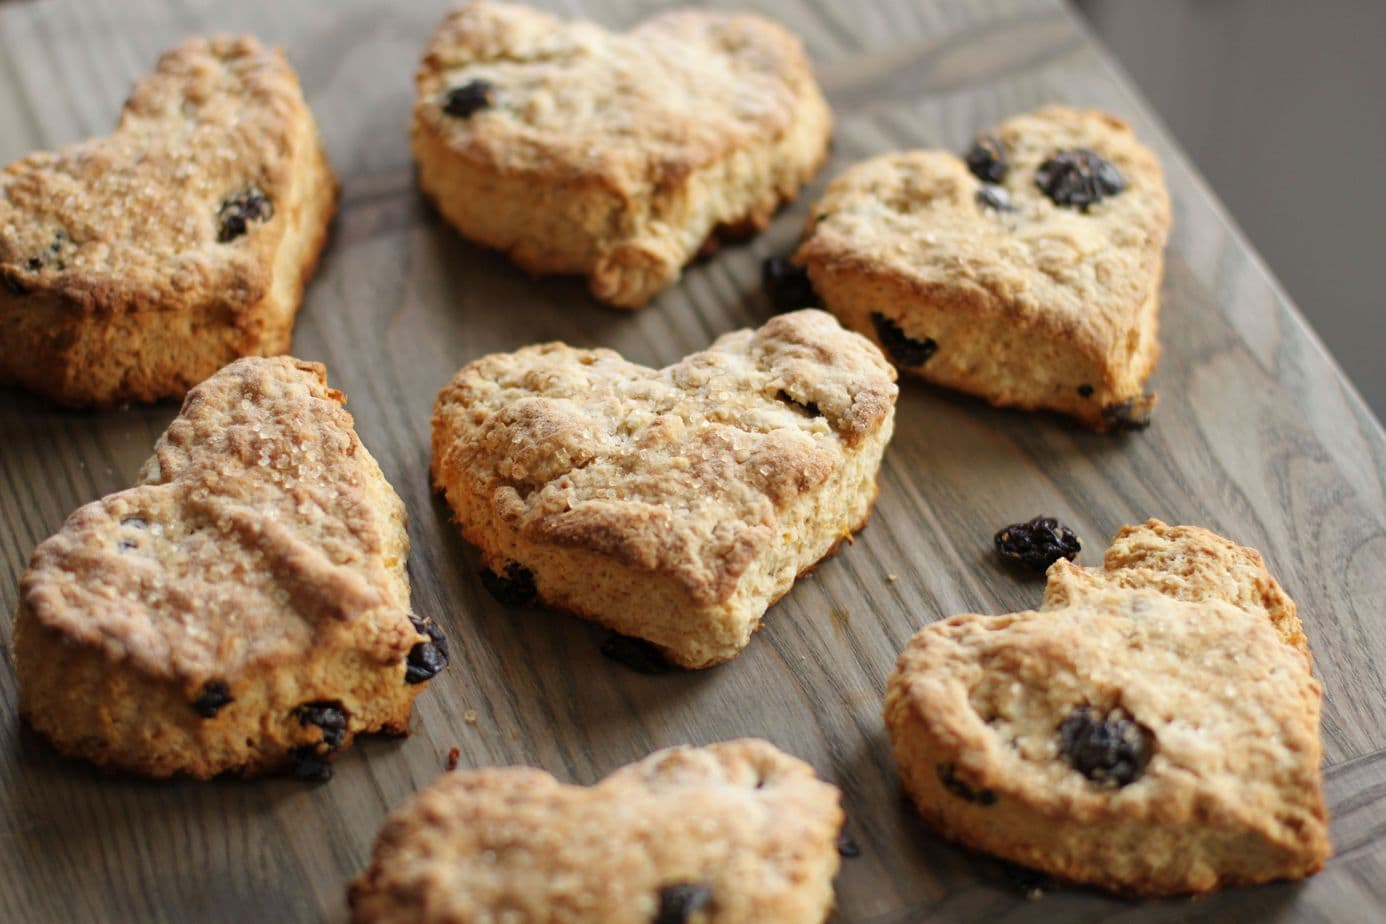 These Cranberry Scones begin with the fluffiest traditional scone batter and end with a little extra 'zest' from the addition of lemon and cranberry. #scones #breakfast #brunch #cranberry scones